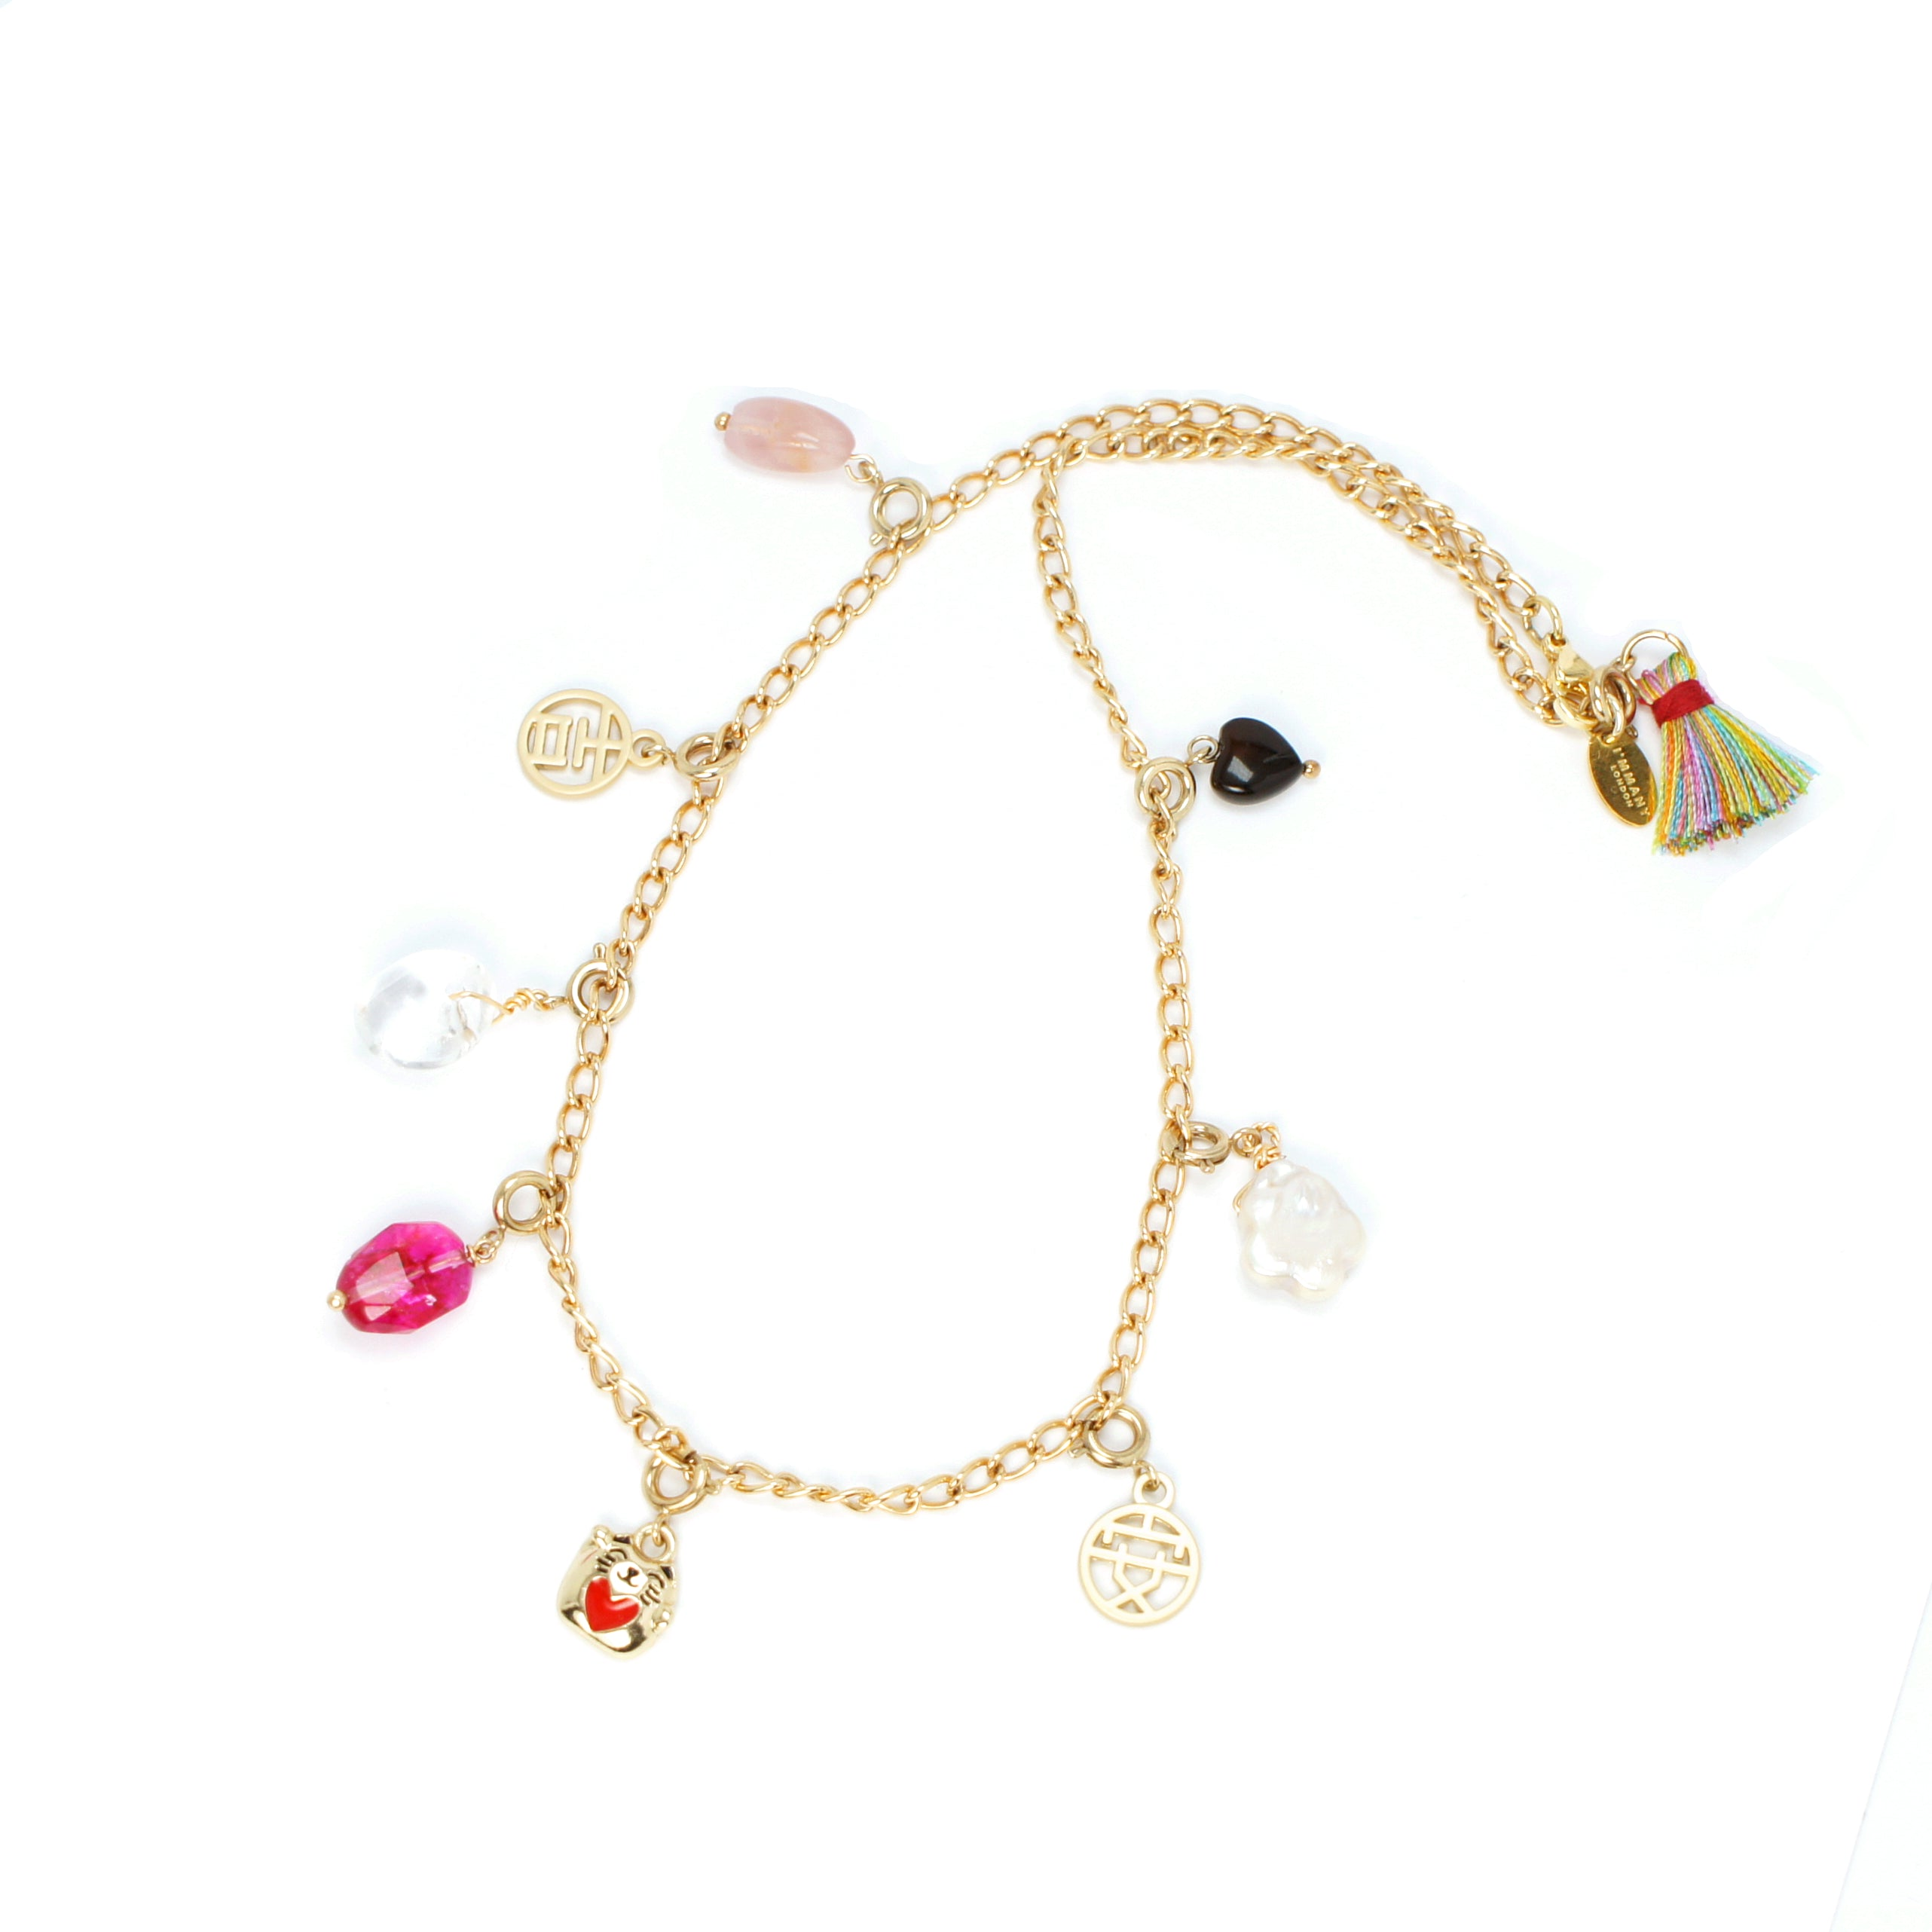 Best Wishes Charm Necklace